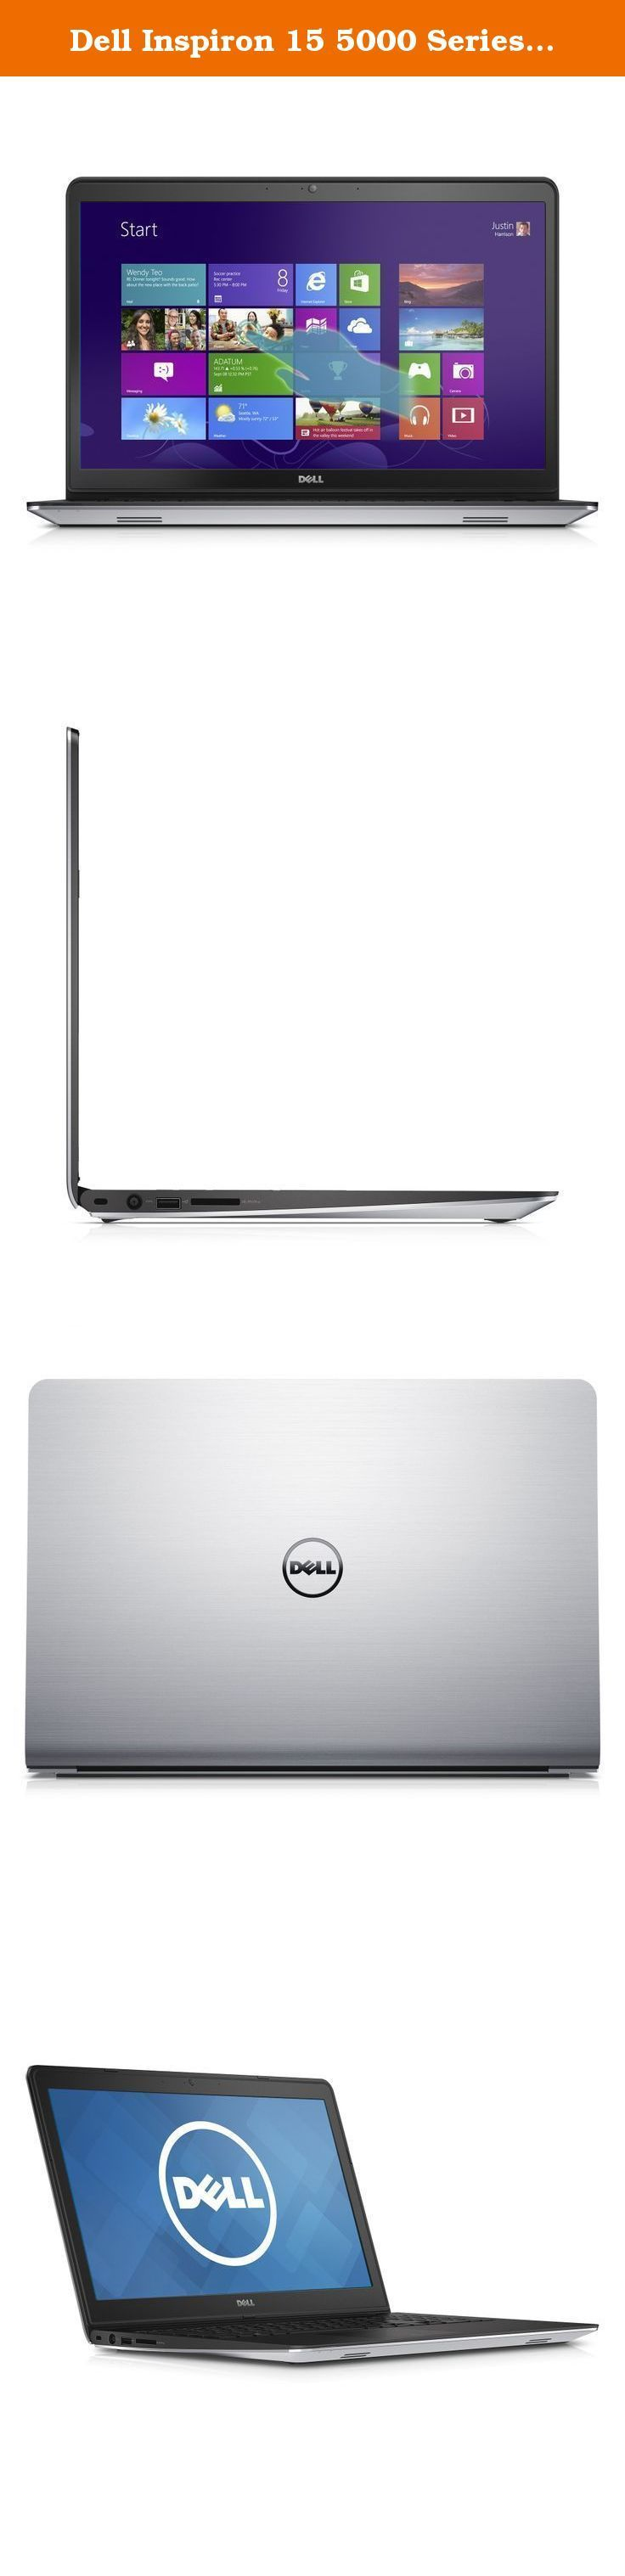 Nice Dell Laptops 2017: Dell Inspiron 15 5000 Series i5547-7502sLV 15-Inch Touchscreen Laptop (Silver, T...  Traditional Laptops, Laptops, Computers & Tablets, Computers & Accessories, Electronics Check more at http://mytechnoworld.info/2017/?product=dell-laptops-2017-dell-inspiron-15-5000-series-i5547-7502slv-15-inch-touchscreen-laptop-silver-t-traditional-laptops-laptops-computers-tablets-computers-accessories-electronics